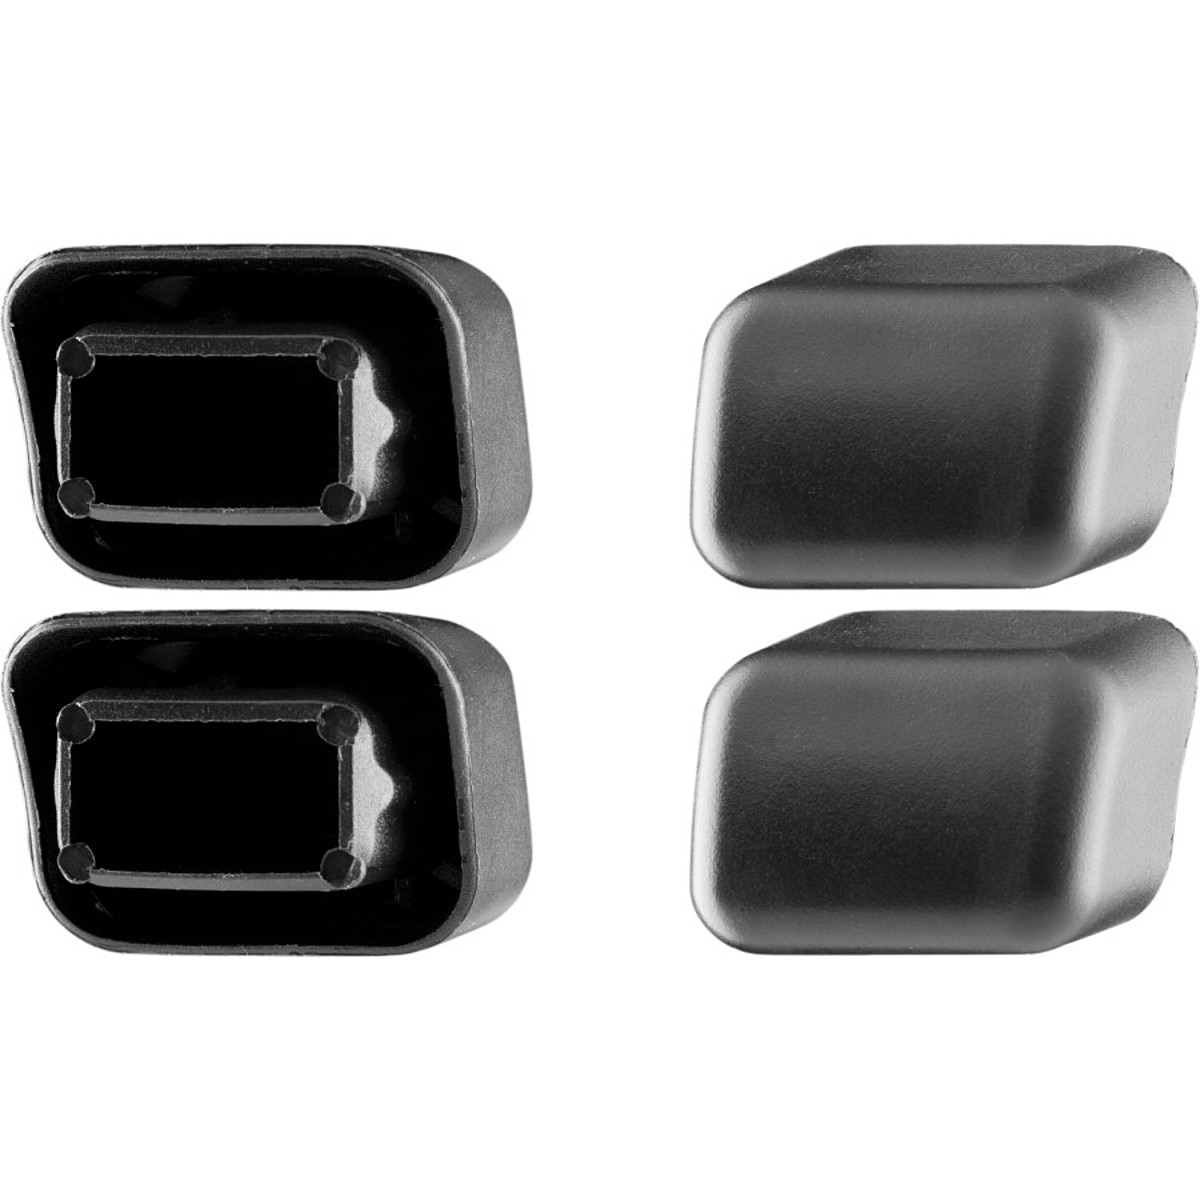 Thule Wheel Tray End Caps 2-Pack